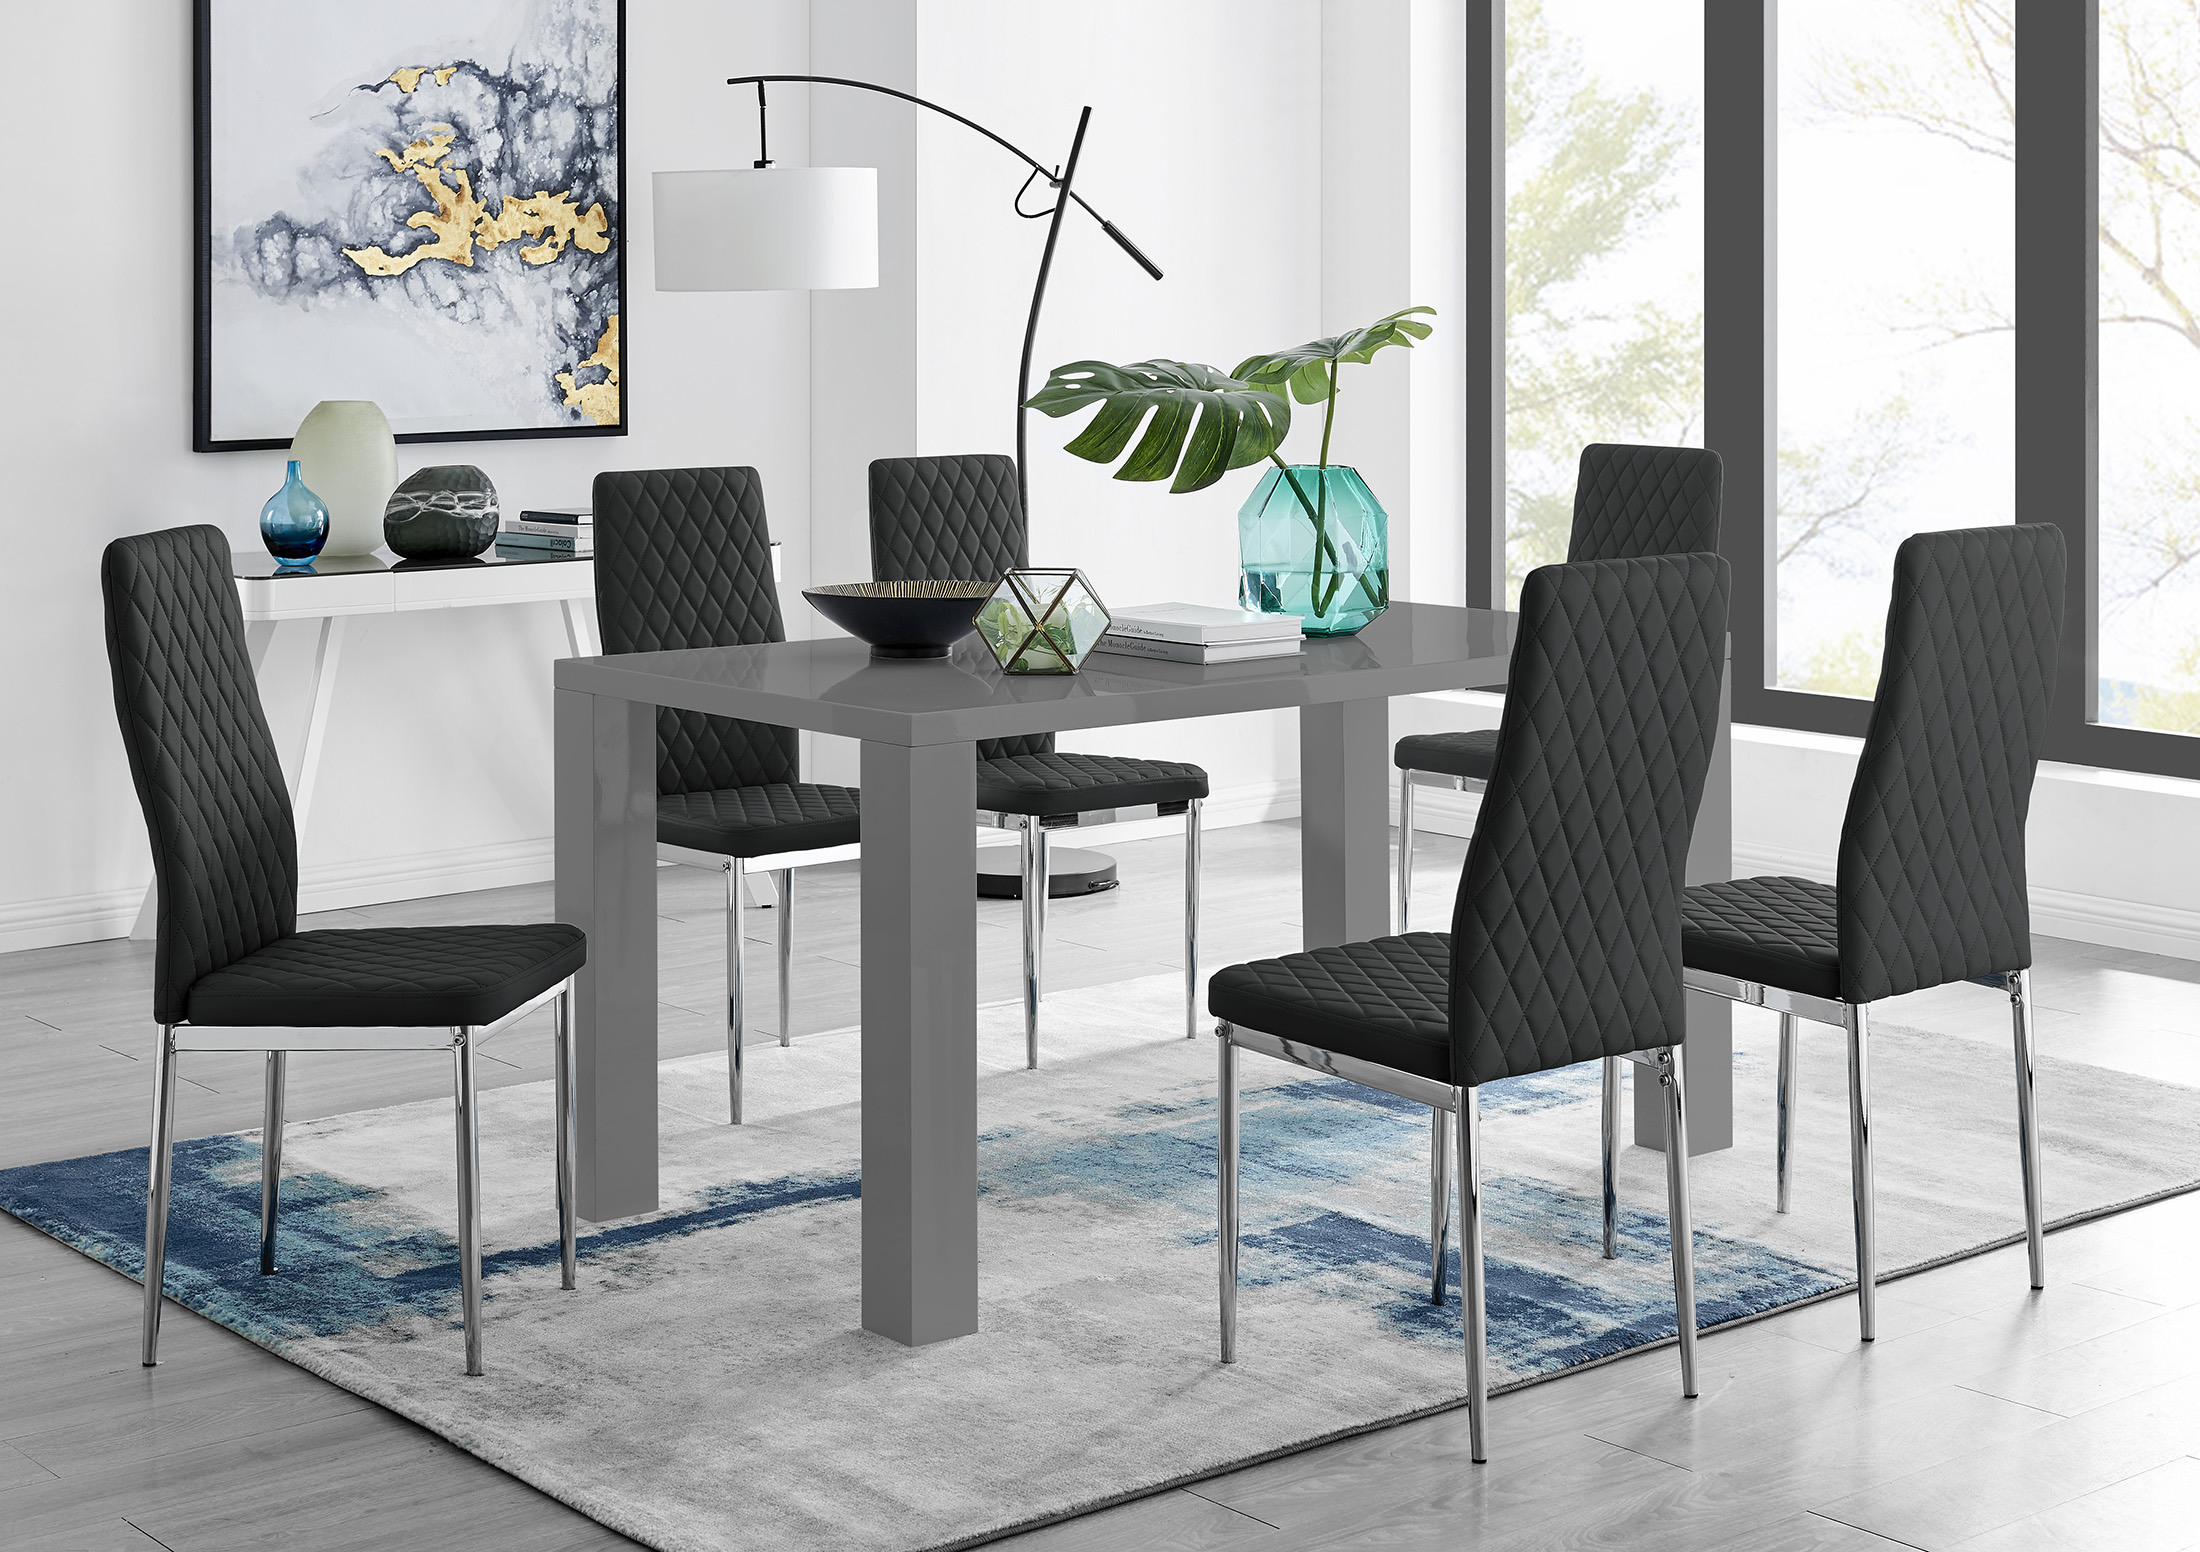 Grey High Gloss Dining Table 6 Milan, Cute Dining Room Chairs